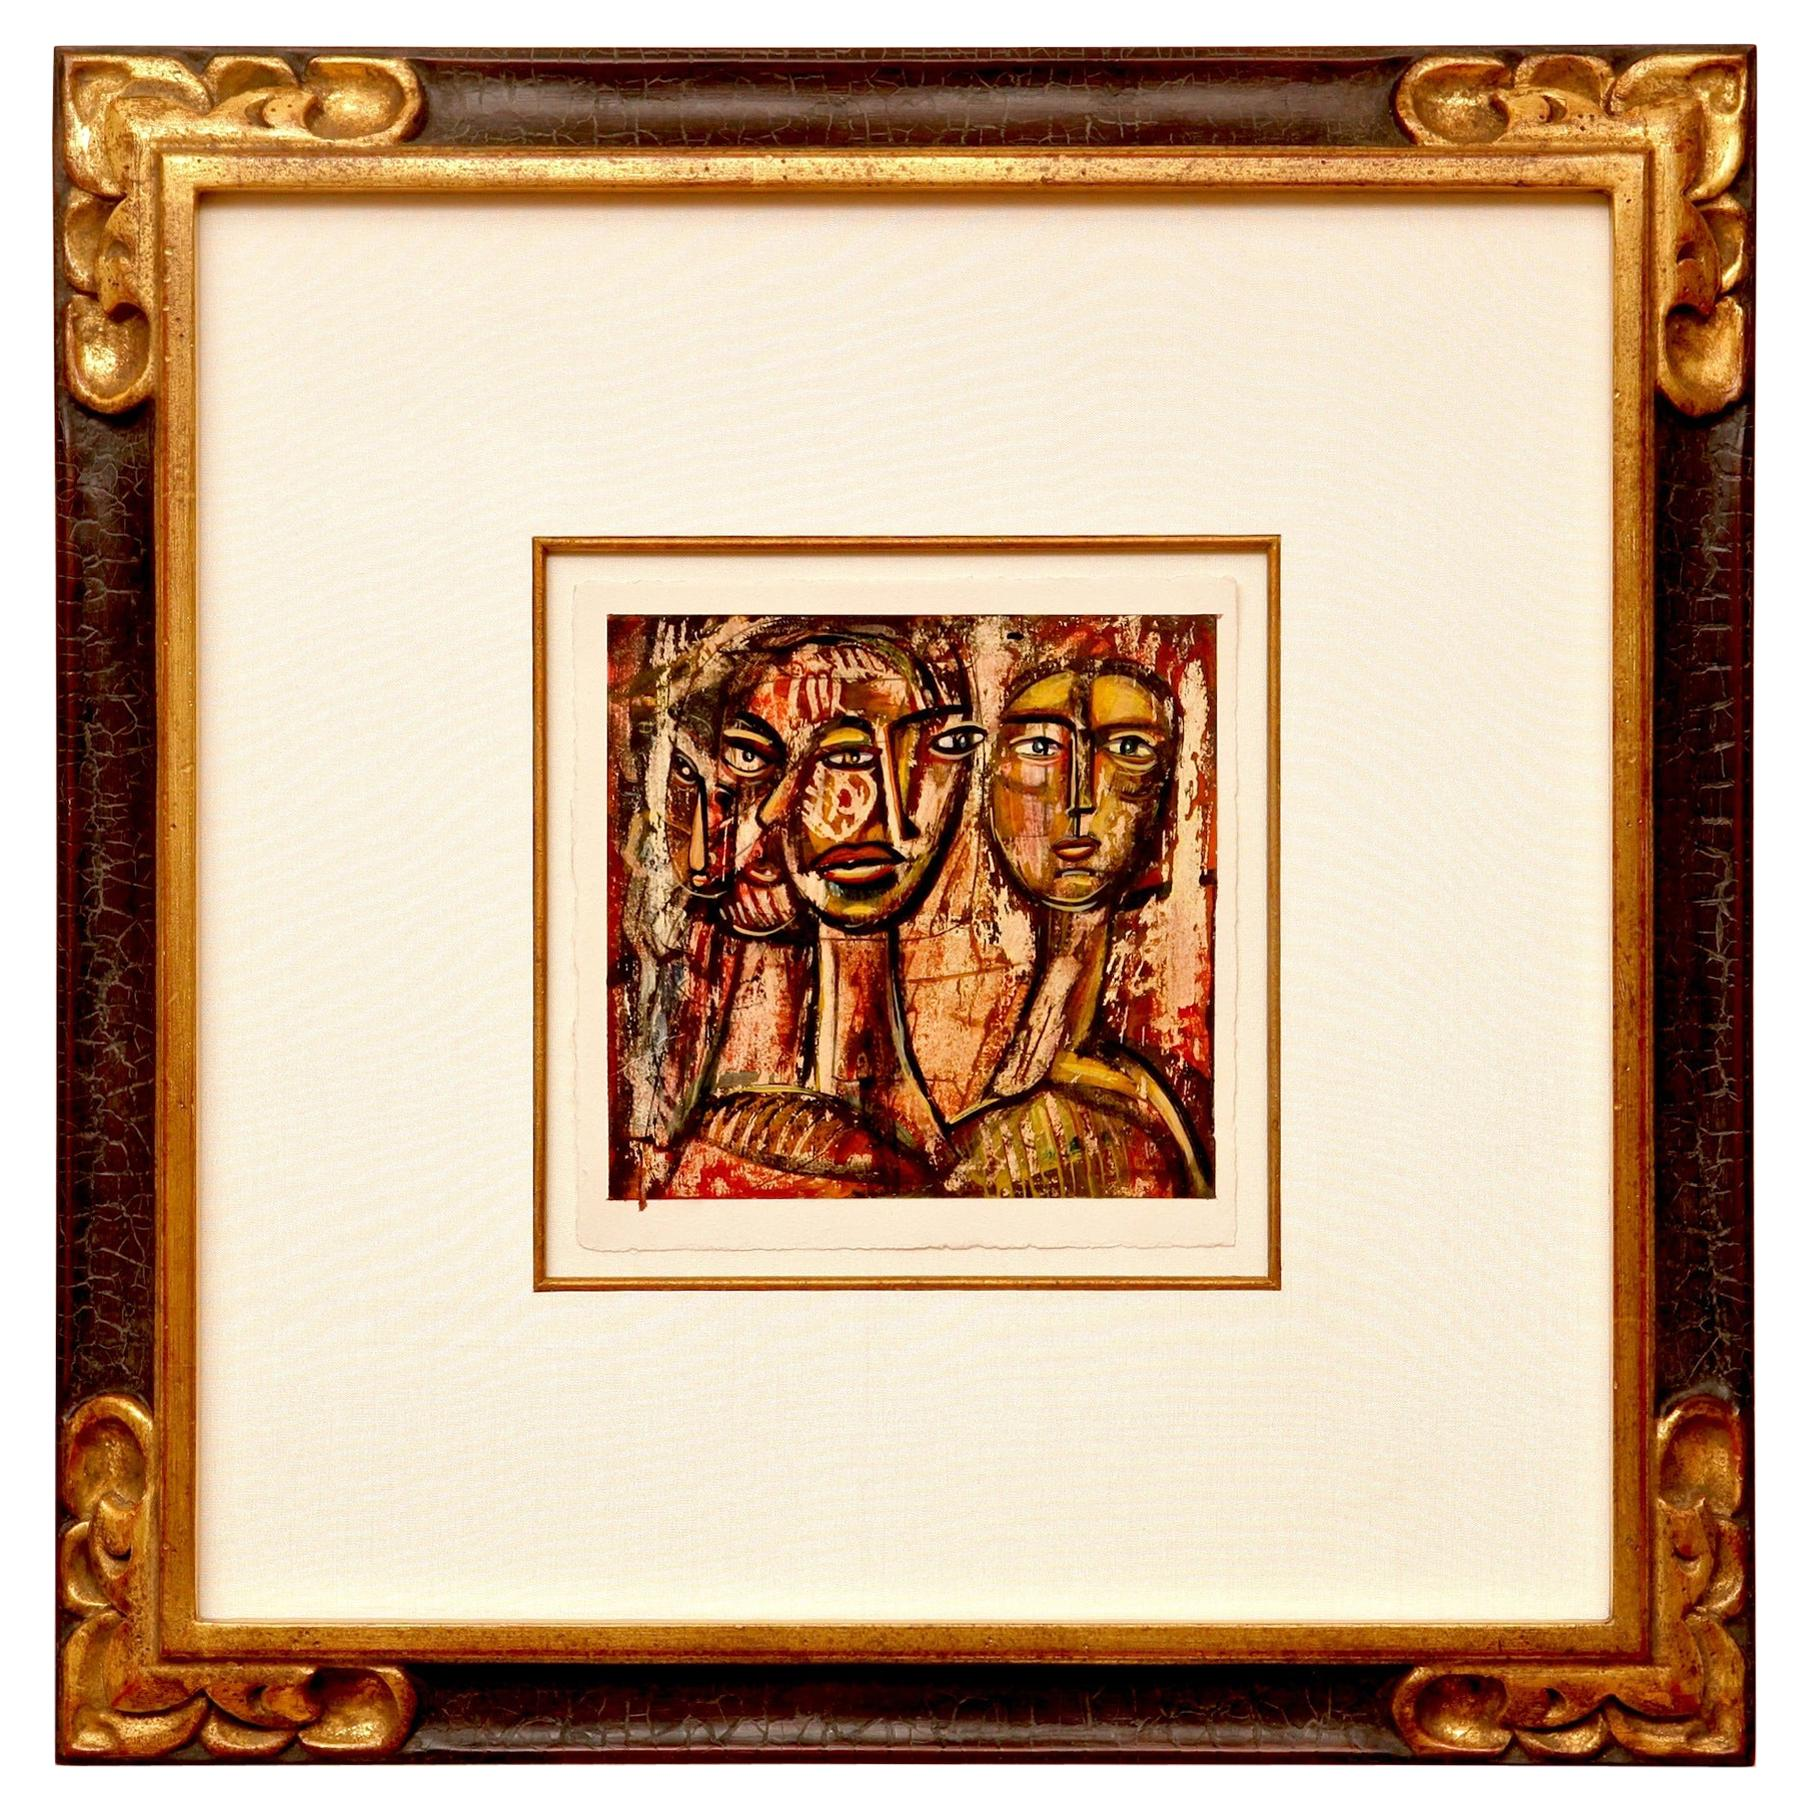 Abstract Figural Cubist Painting with Picasso Like Faces